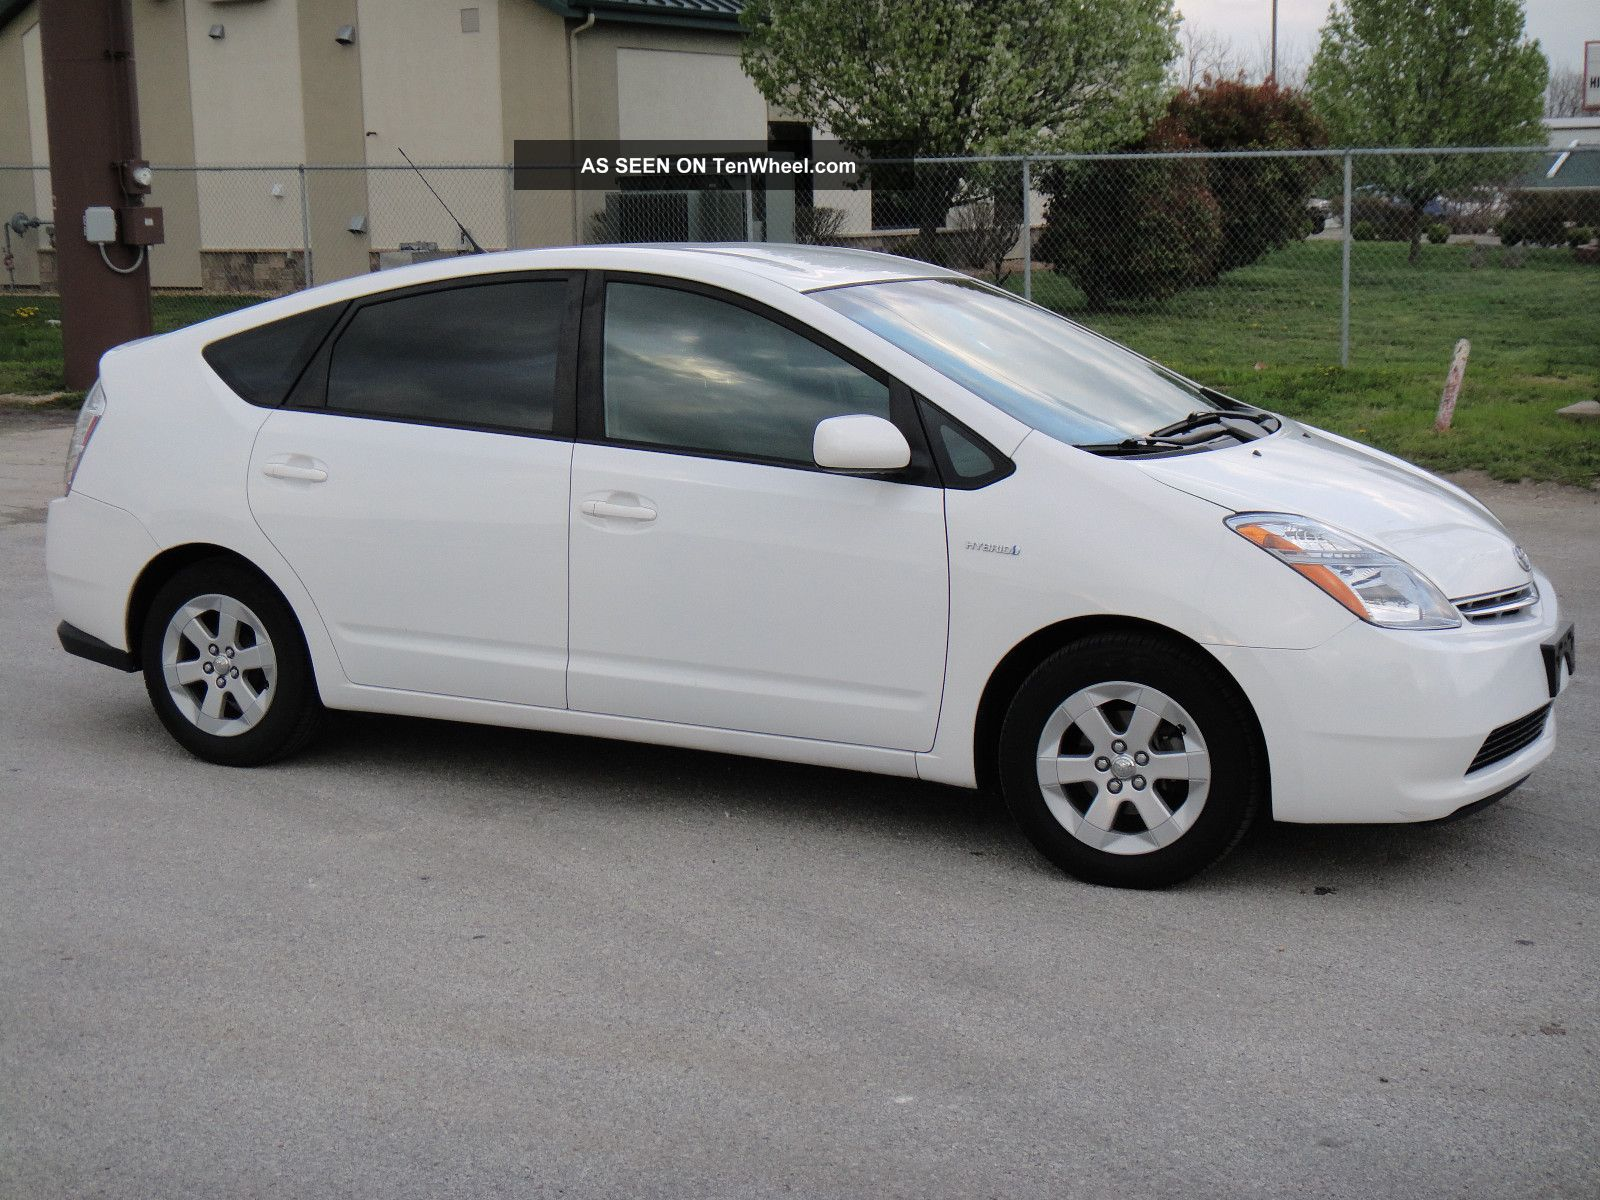 2007_toyota_prius_hybrid_4___door_50_mpg_1_lgw electrical wiring diagrams cars 1 on electrical wiring diagrams cars